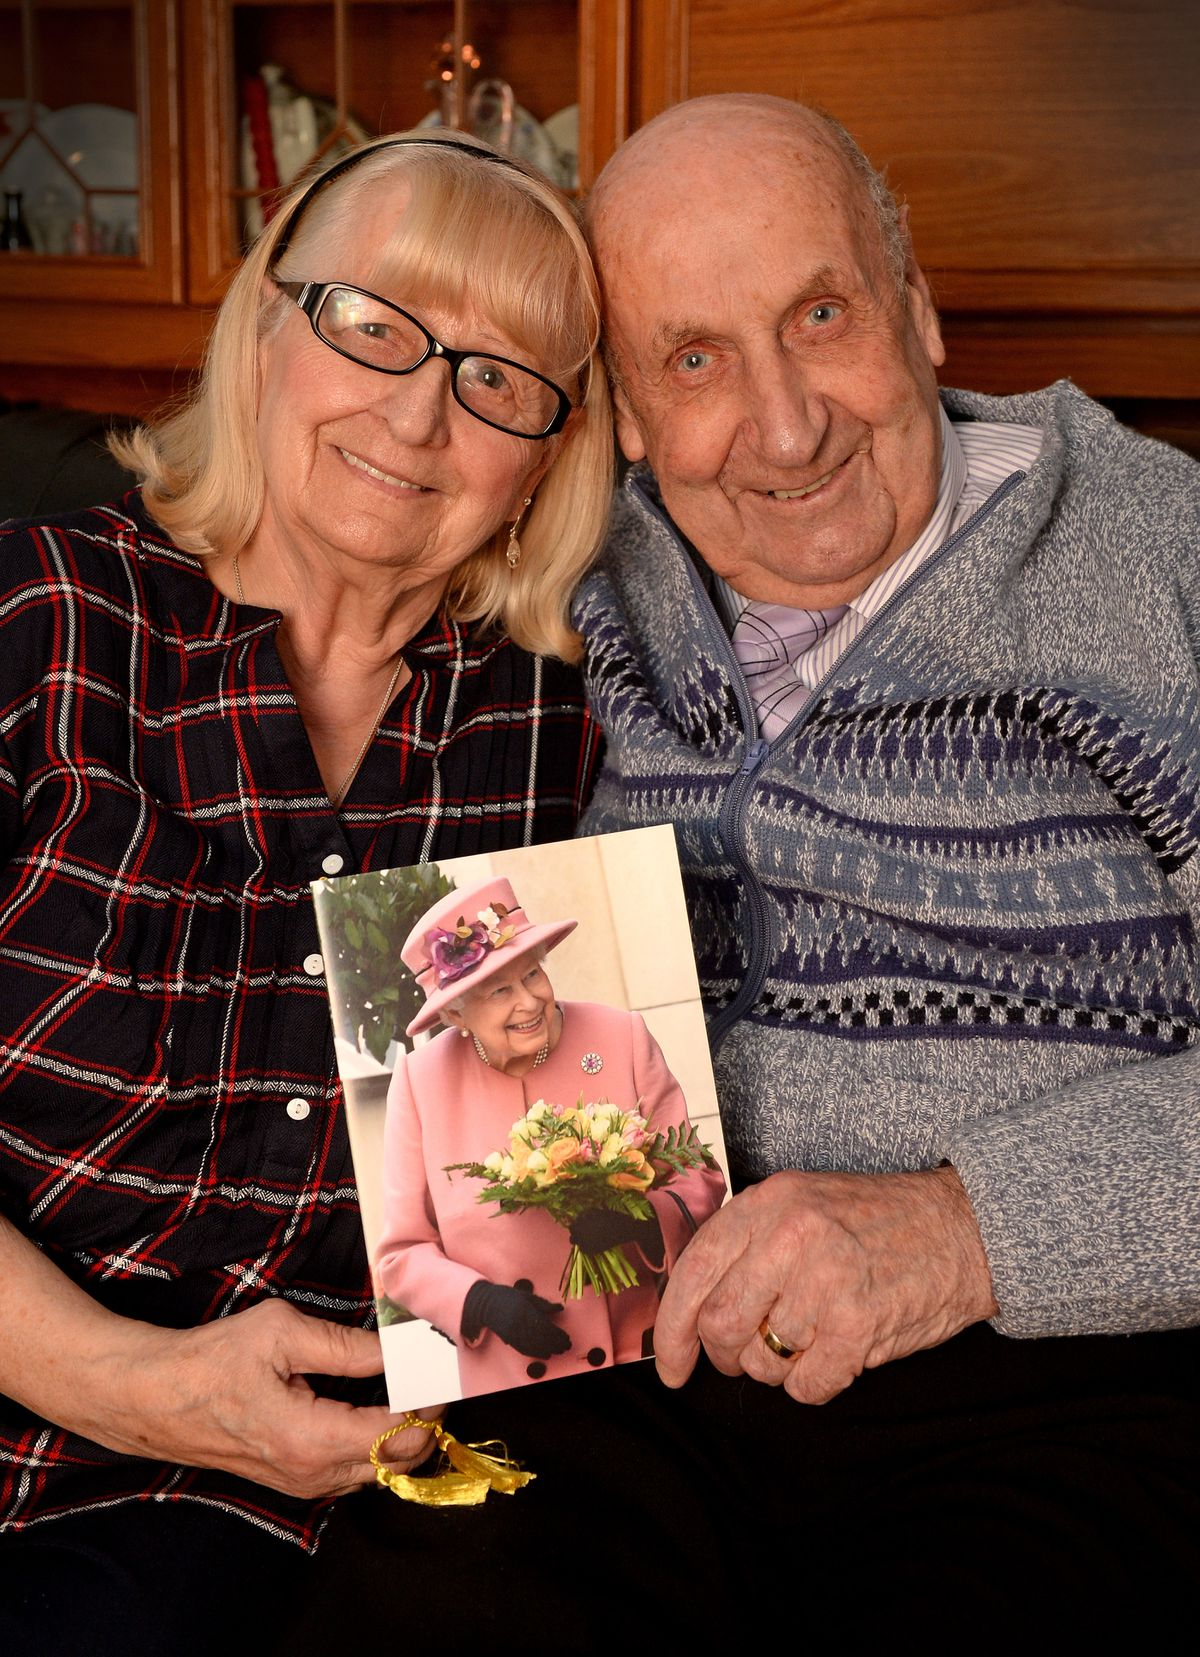 John and Ingrid Taylor, from Bridgnorth, celebrated their 65th wedding anniversary